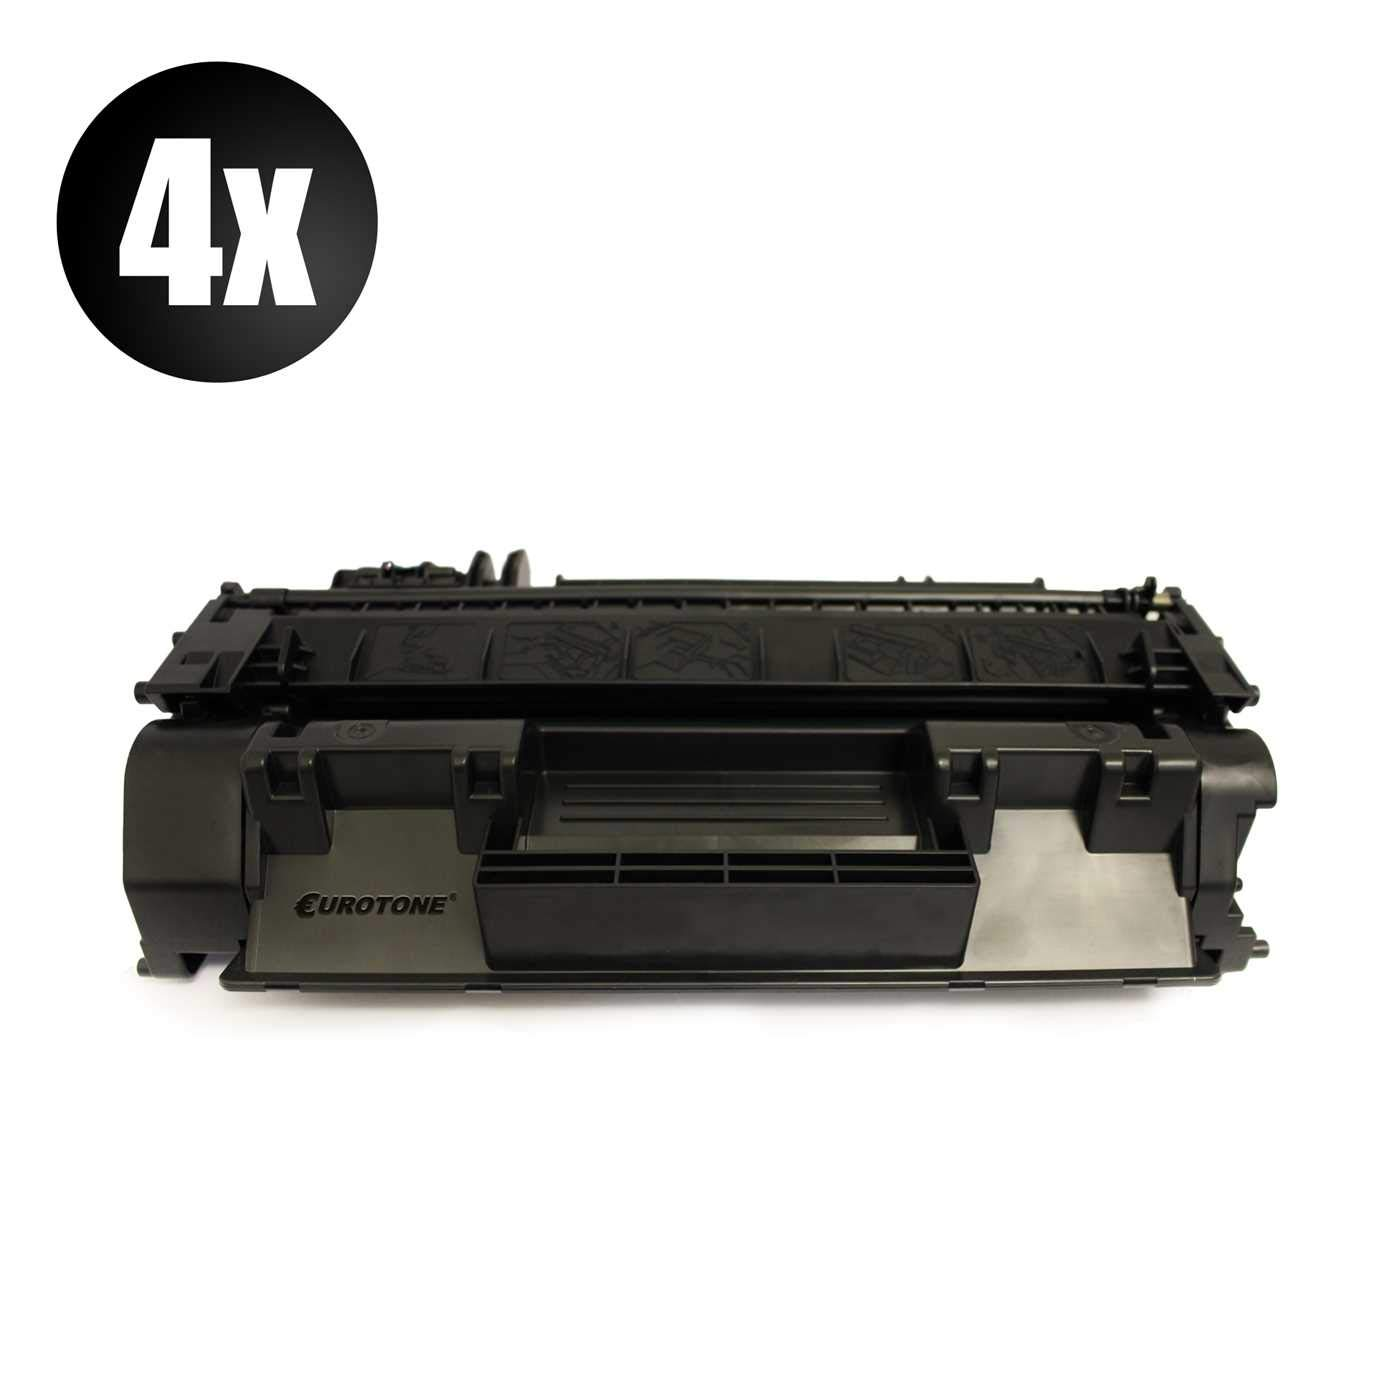 1x Eurotone OPC Drum Unit for Xerox WC 3335 3345 DNI replaces 101R00555 101 R 00555